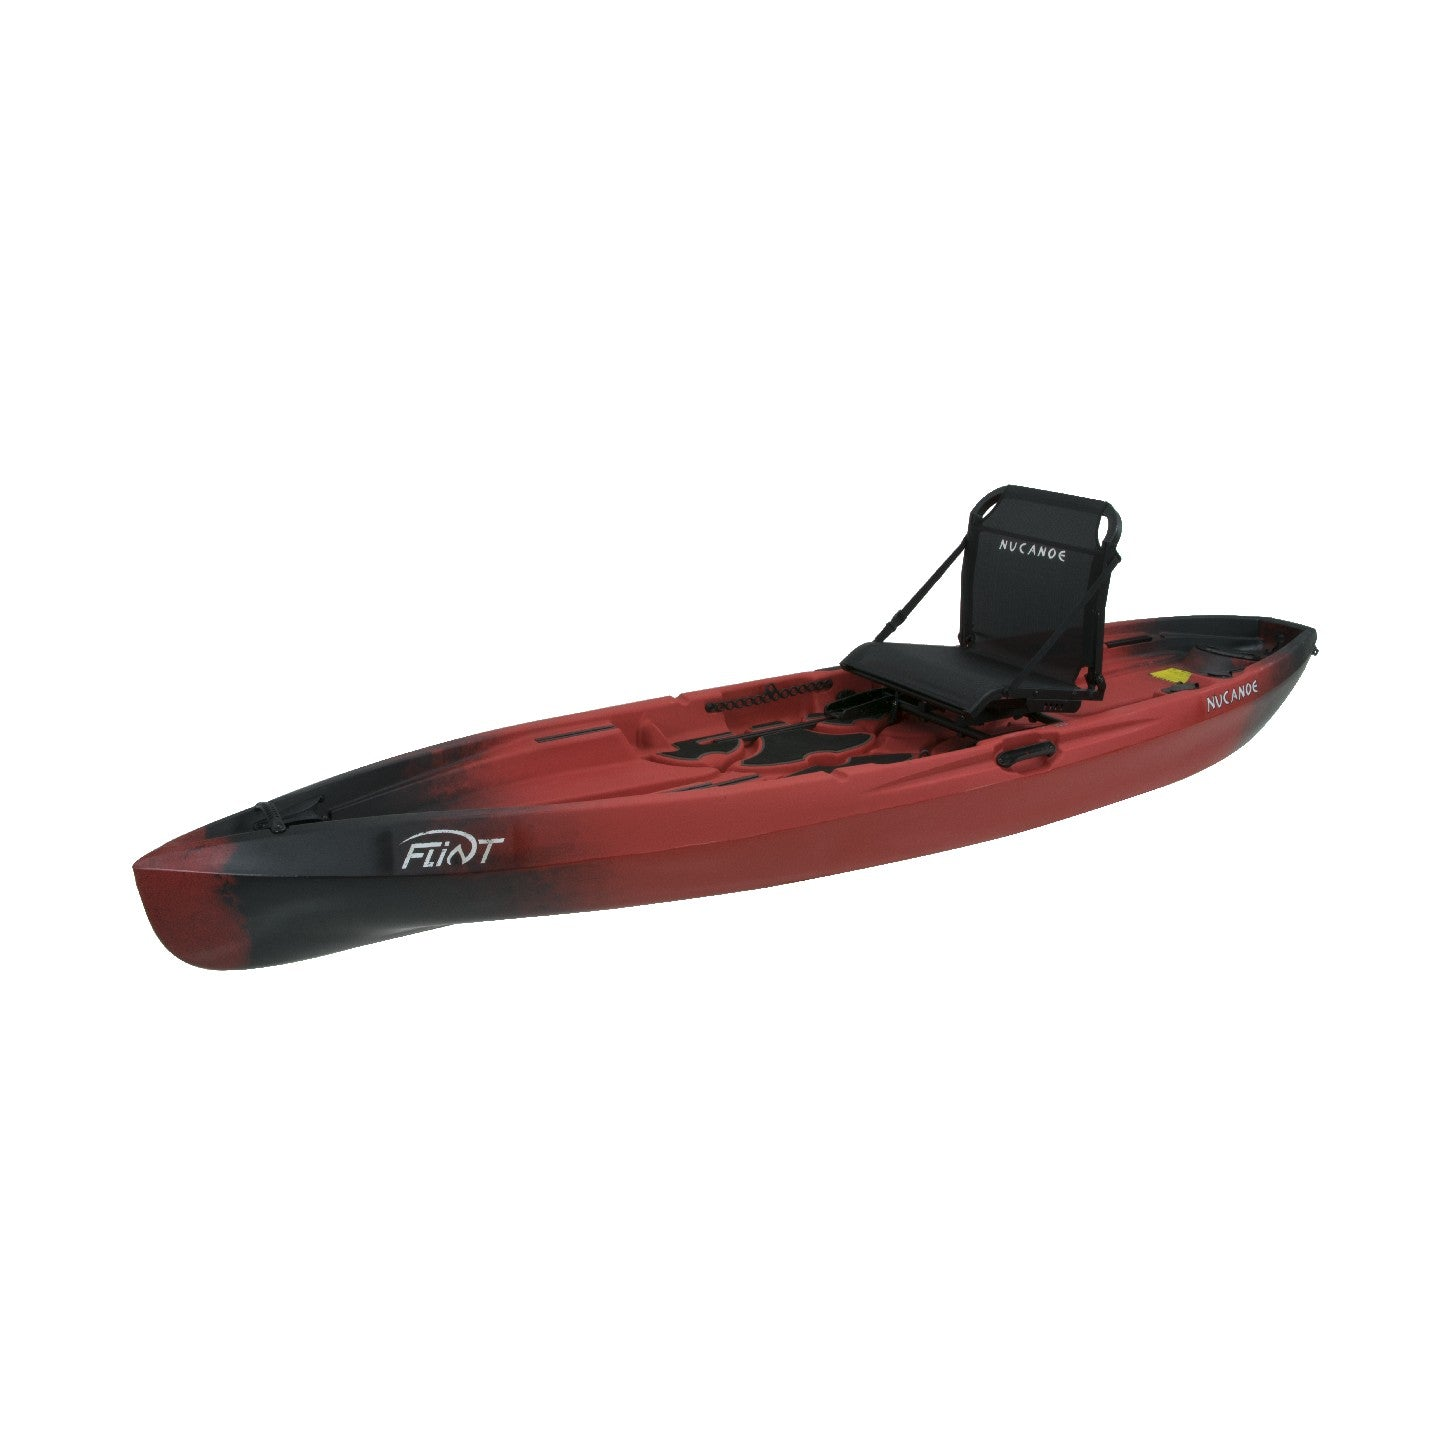 NuCanoe Flint Fishing Kayak 2020 | Bulldog - Kayak Creek